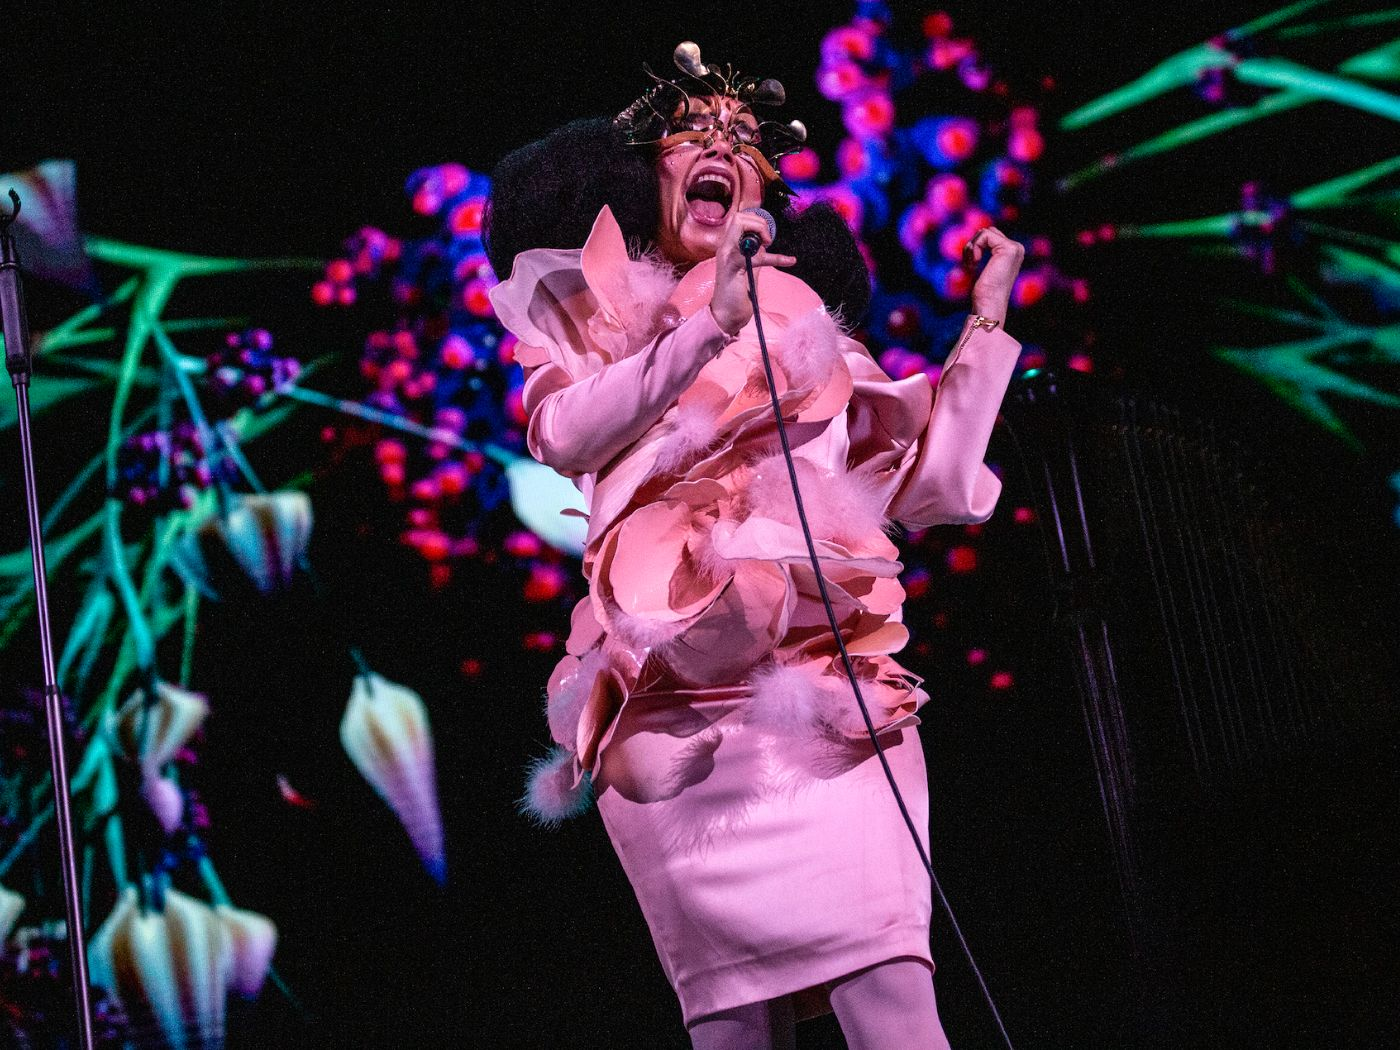 Björk's 'Cornucopia' live in London: an audacious, expectation-disrupting spectacular from an artist unbothered with people-pleasing